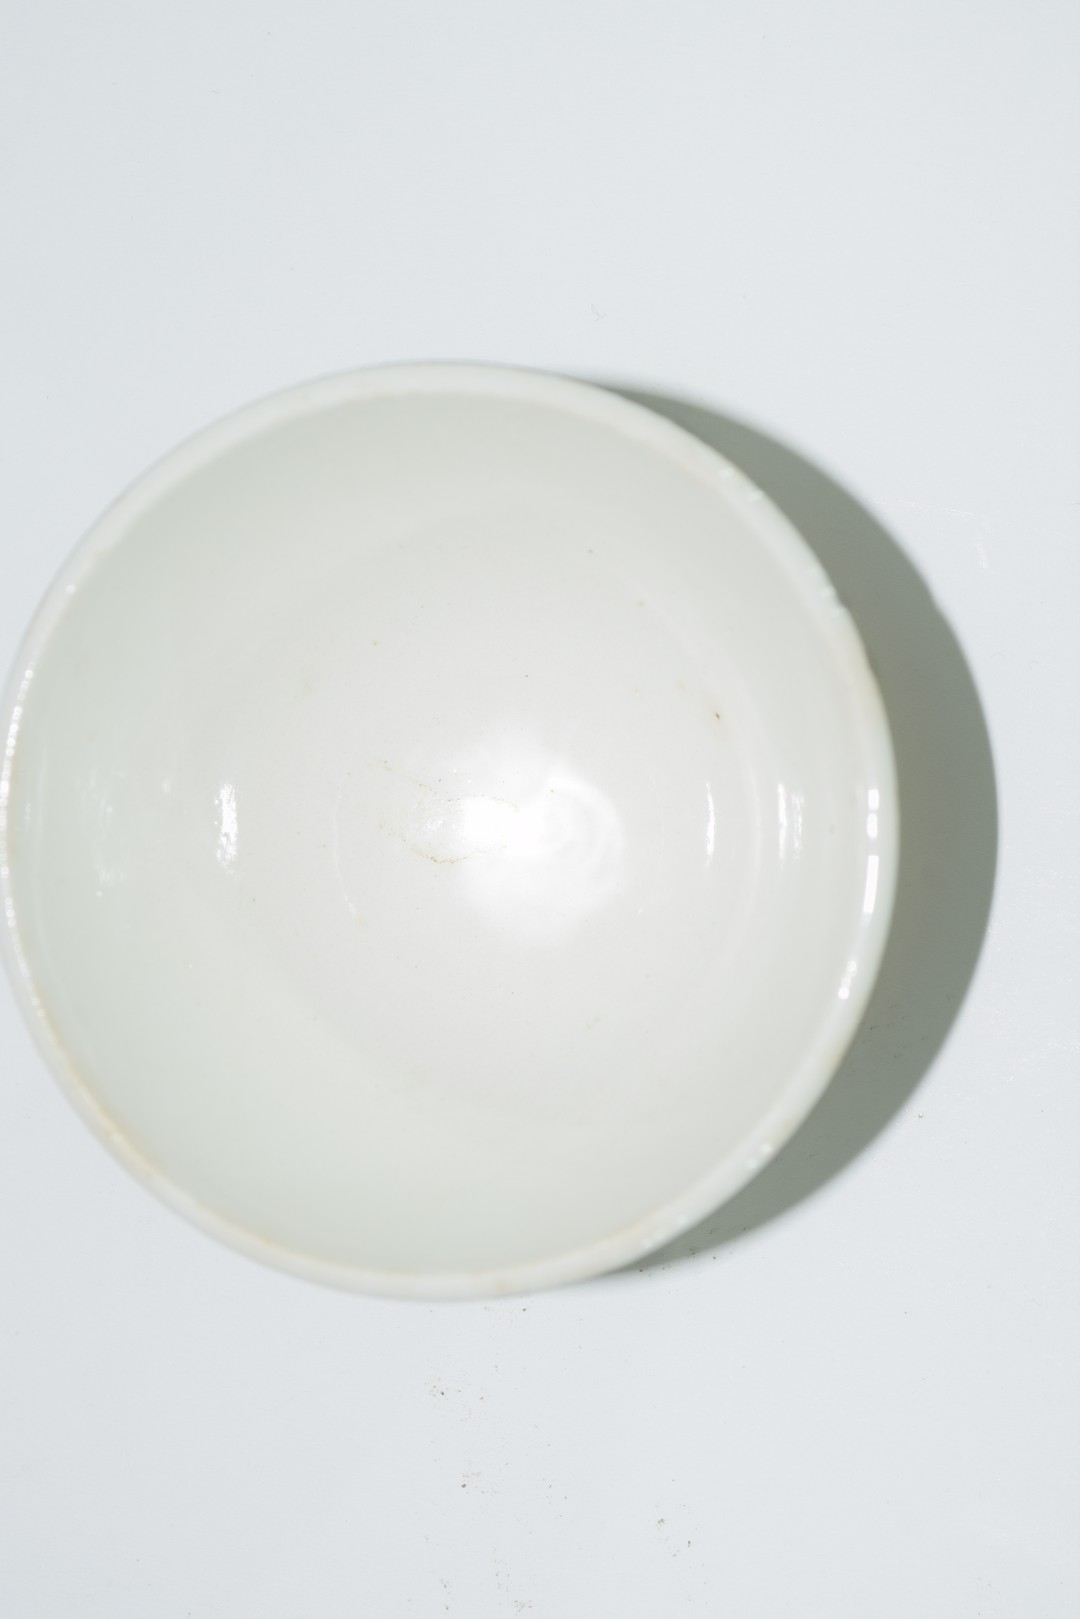 Small bowl decorated in black and white with a design by Fornisetti, - Image 5 of 5